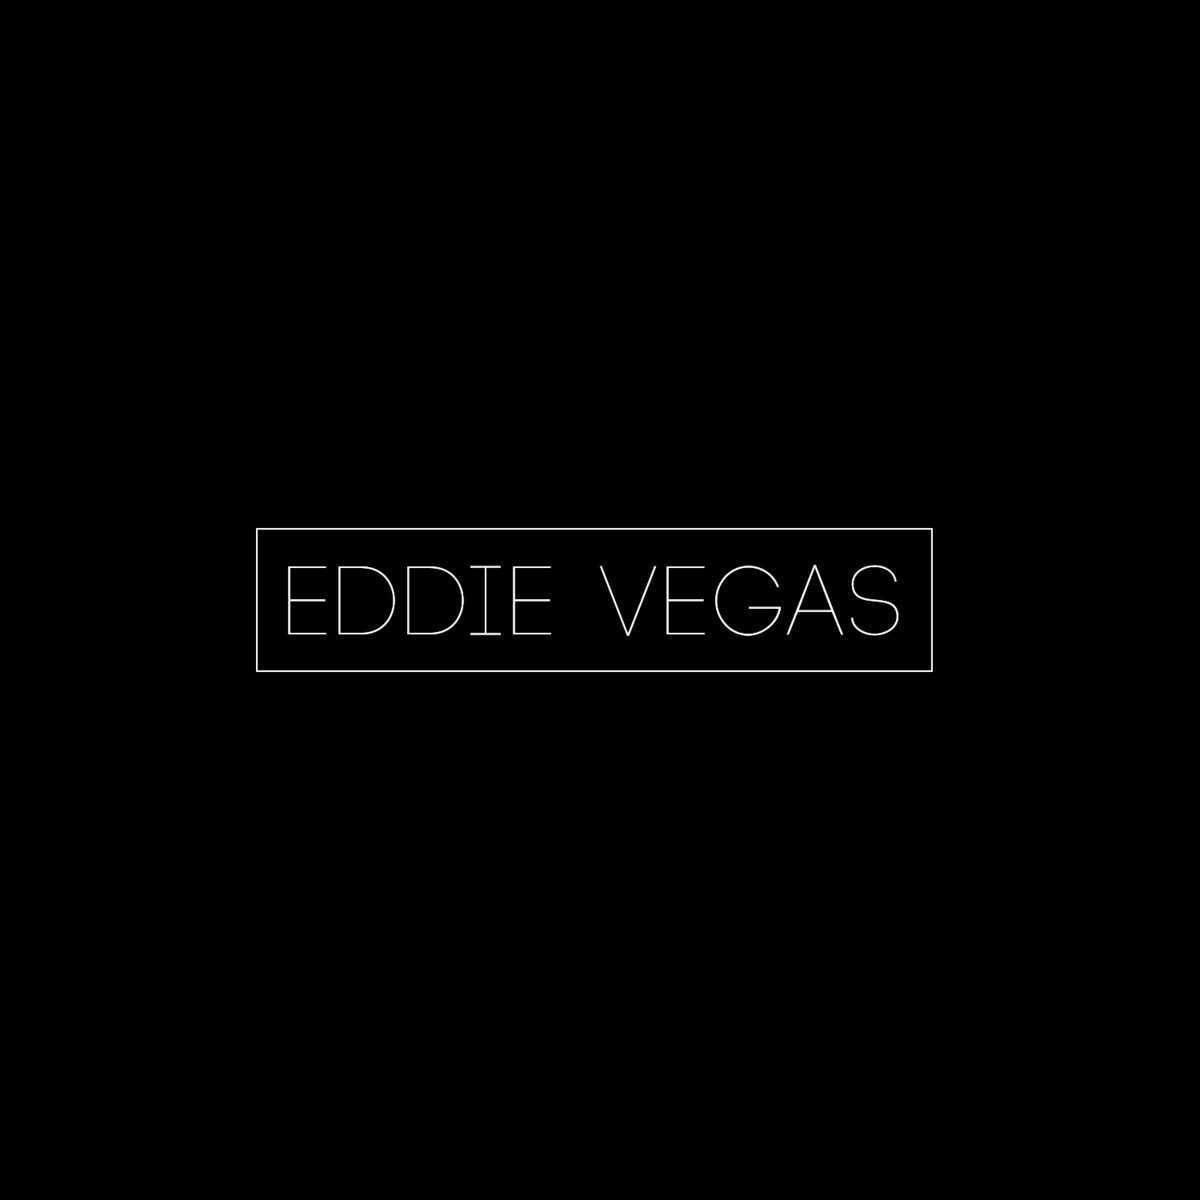 UK Artist Eddie Vegas Talks Producing, His Latest EP, Grime Music [Interview]